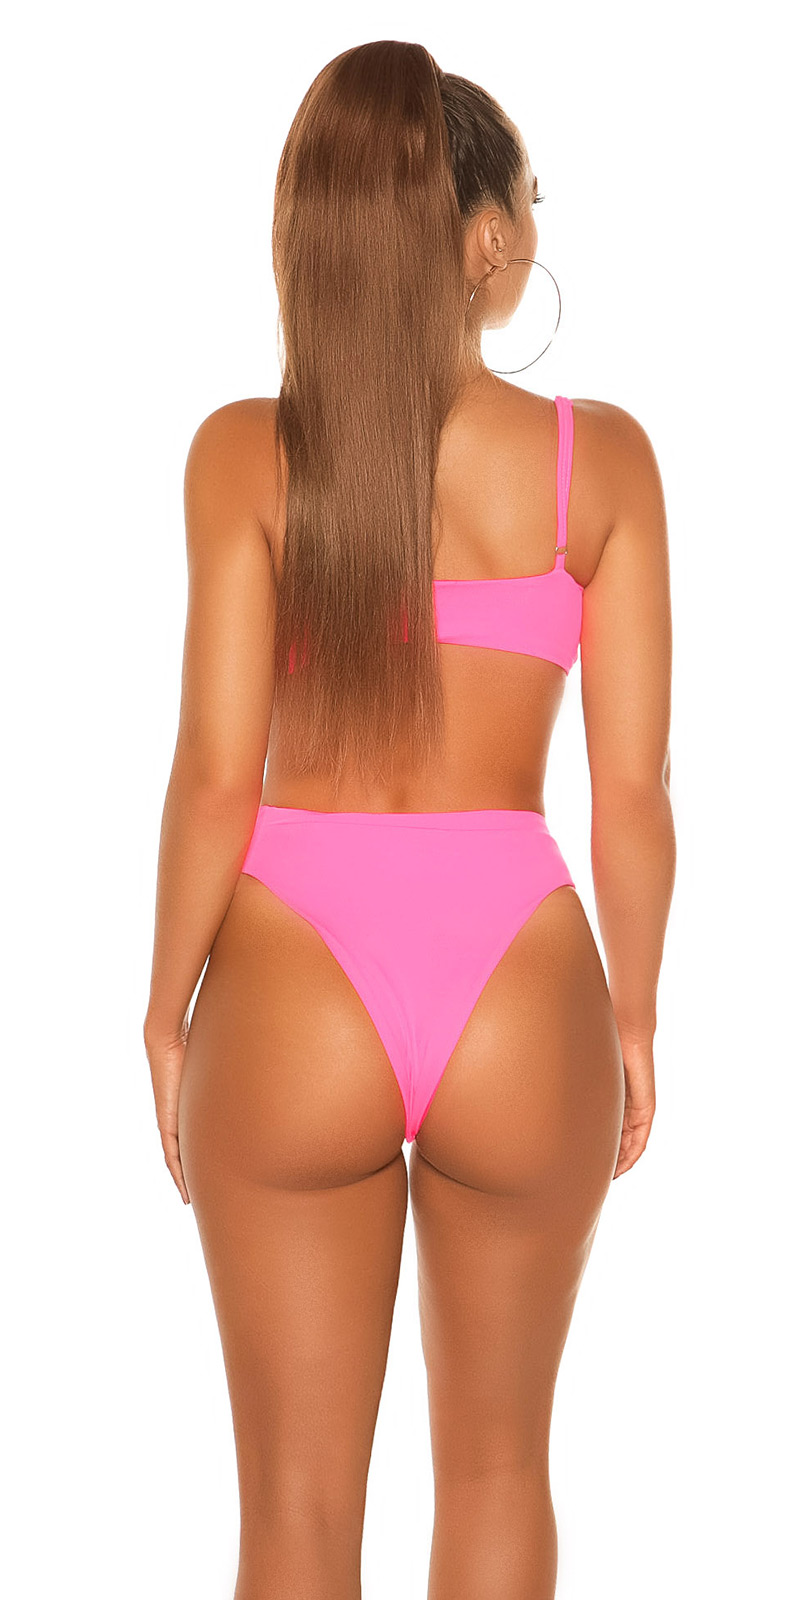 Costum de baie in doua piese MIX ITsexy top cu removable pads